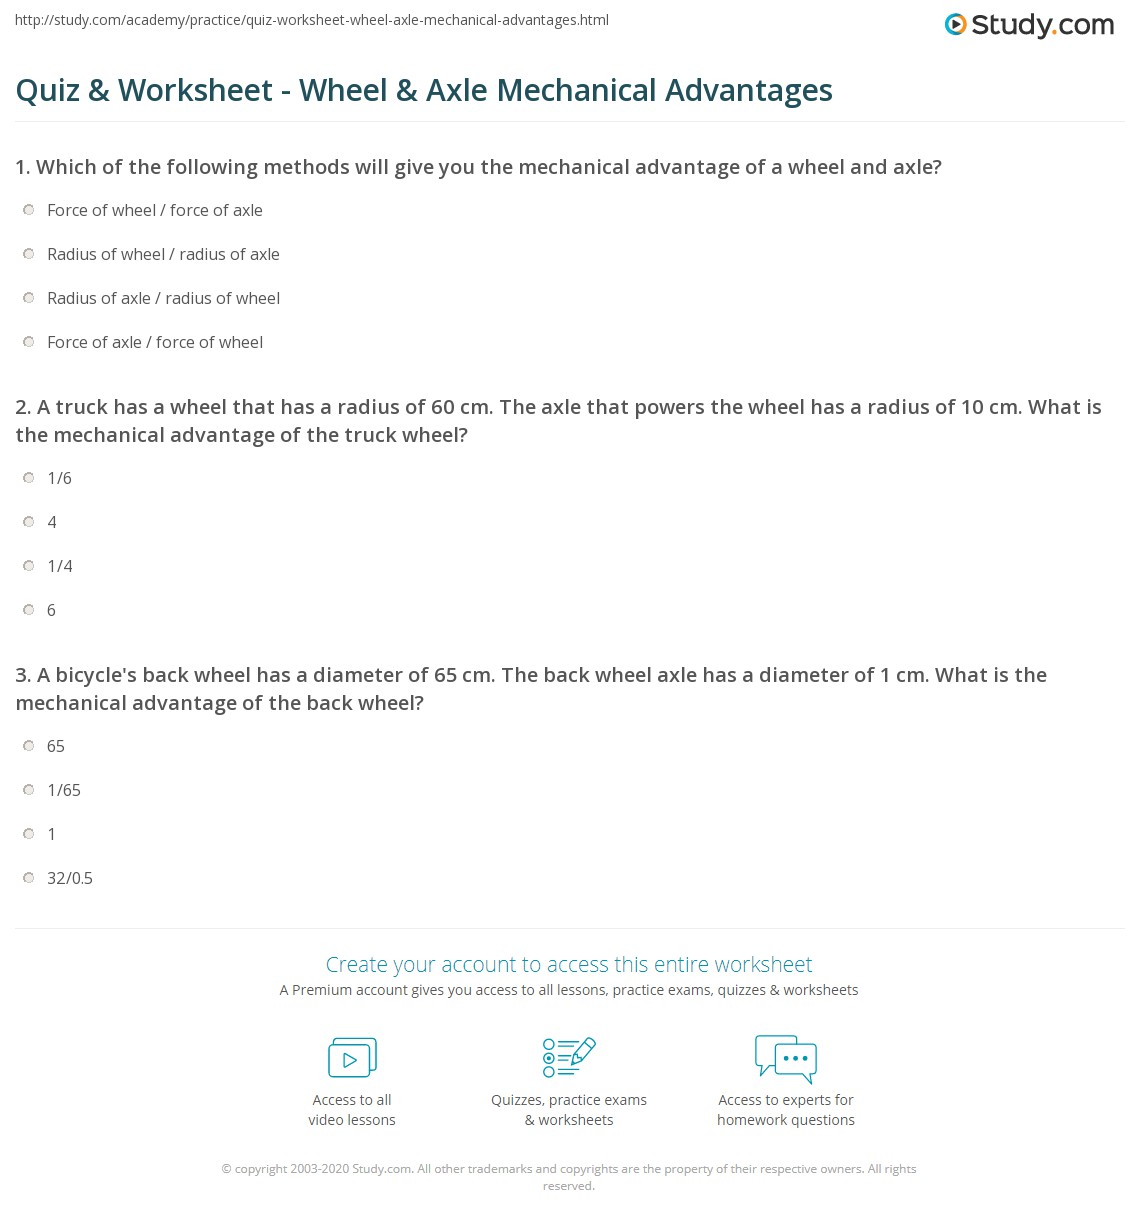 Print Mechanical Advantage of the Wheel & Axle Worksheet